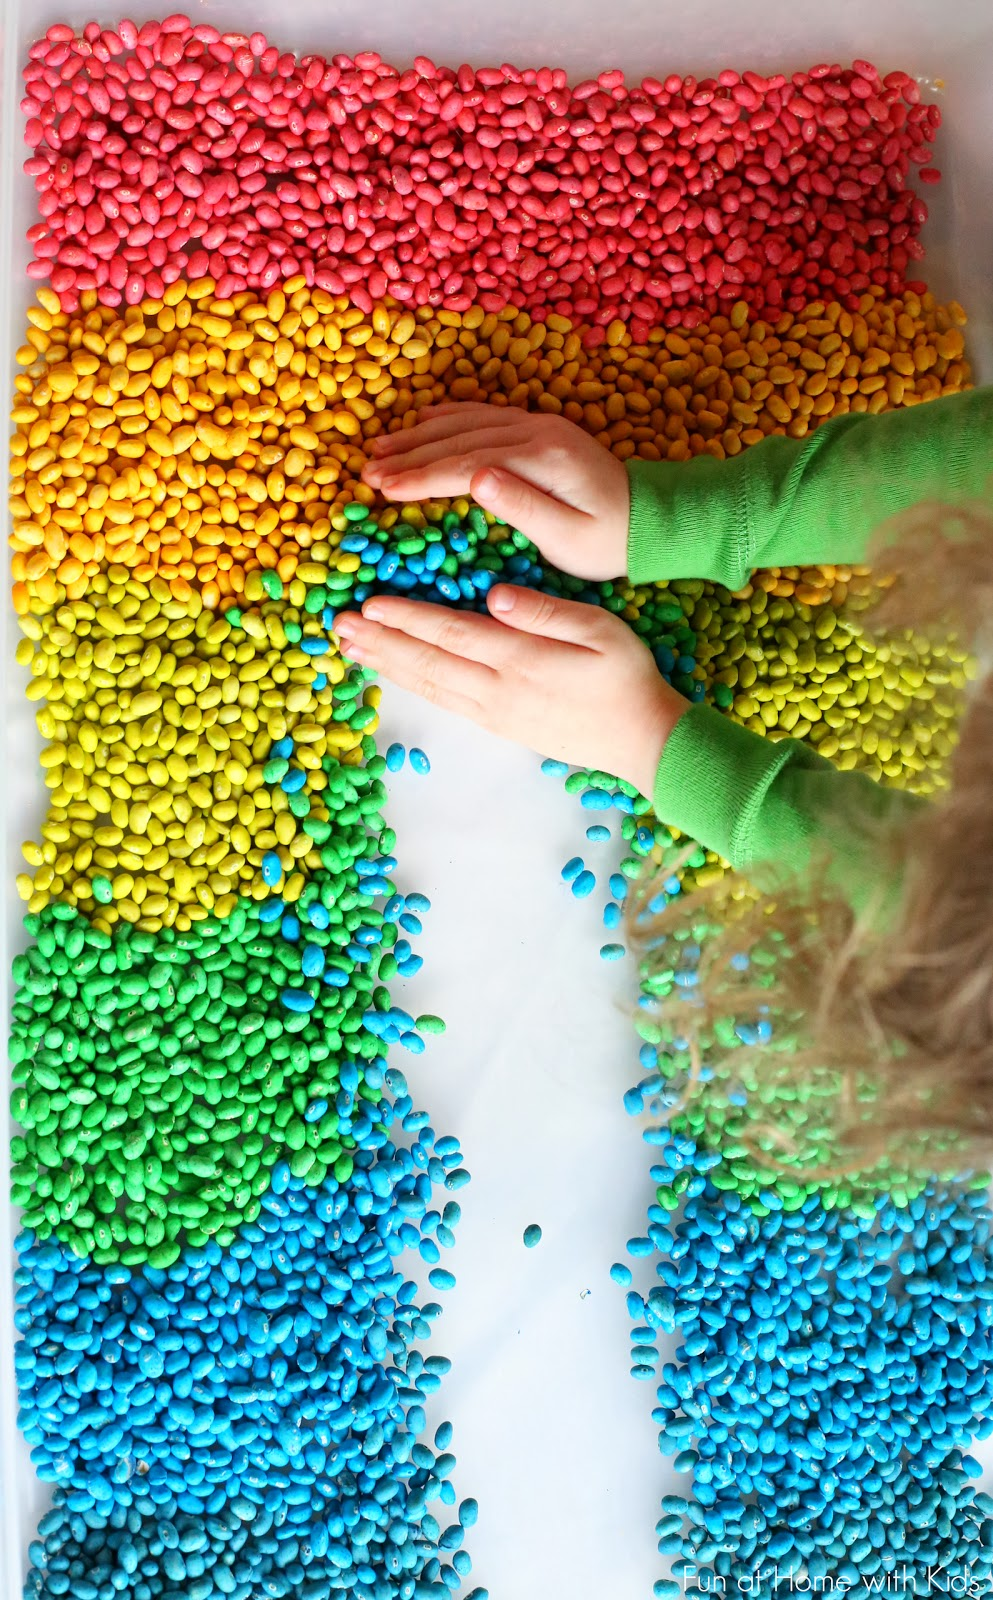 DIY sensory bin with colorful beans